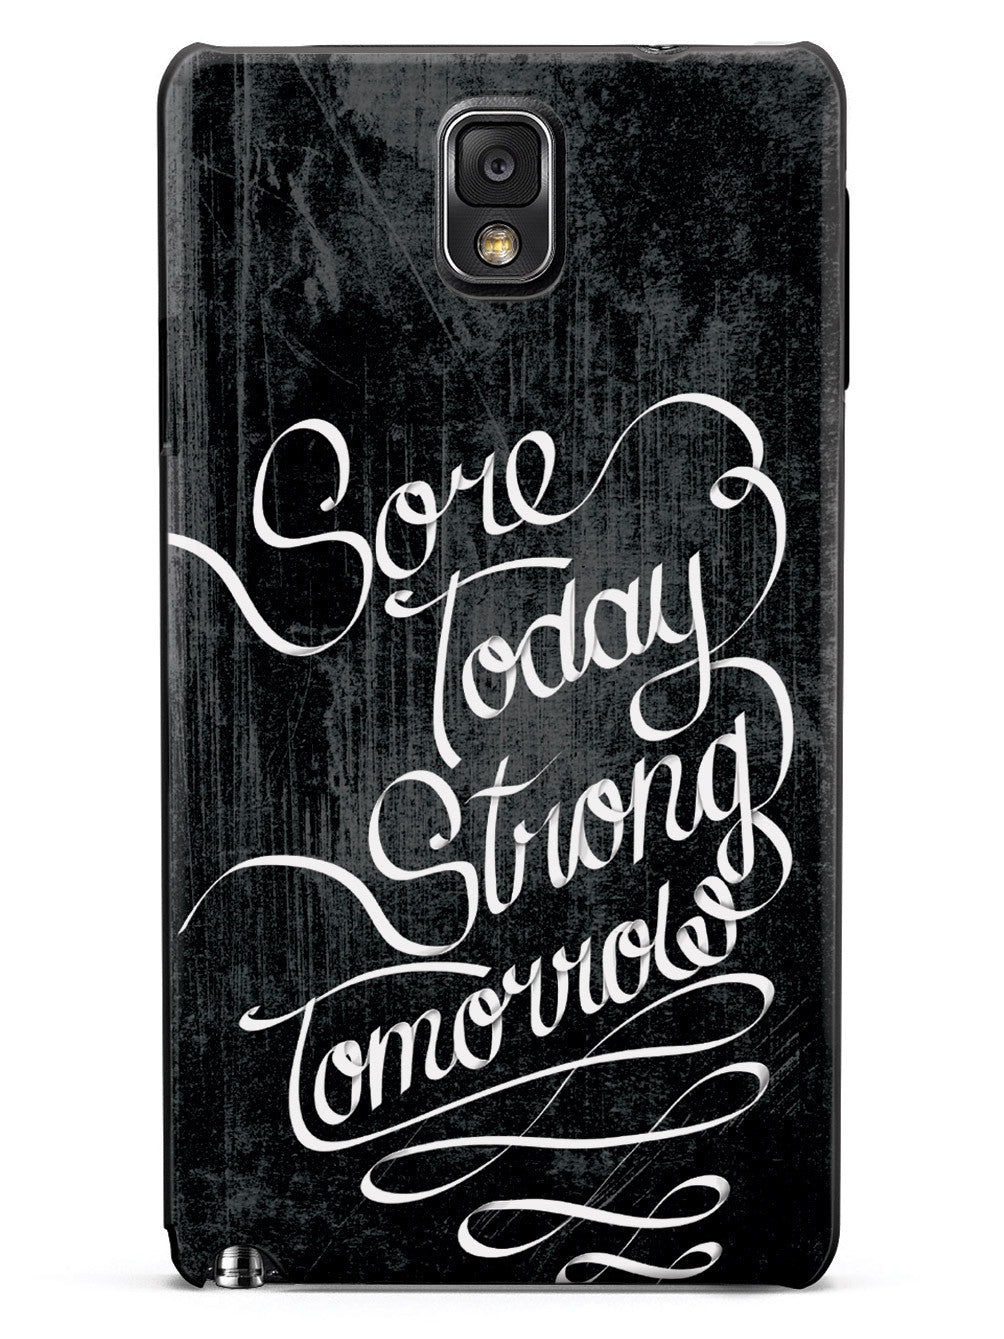 Sore Today, Strong Tomorrow - Fitness Case